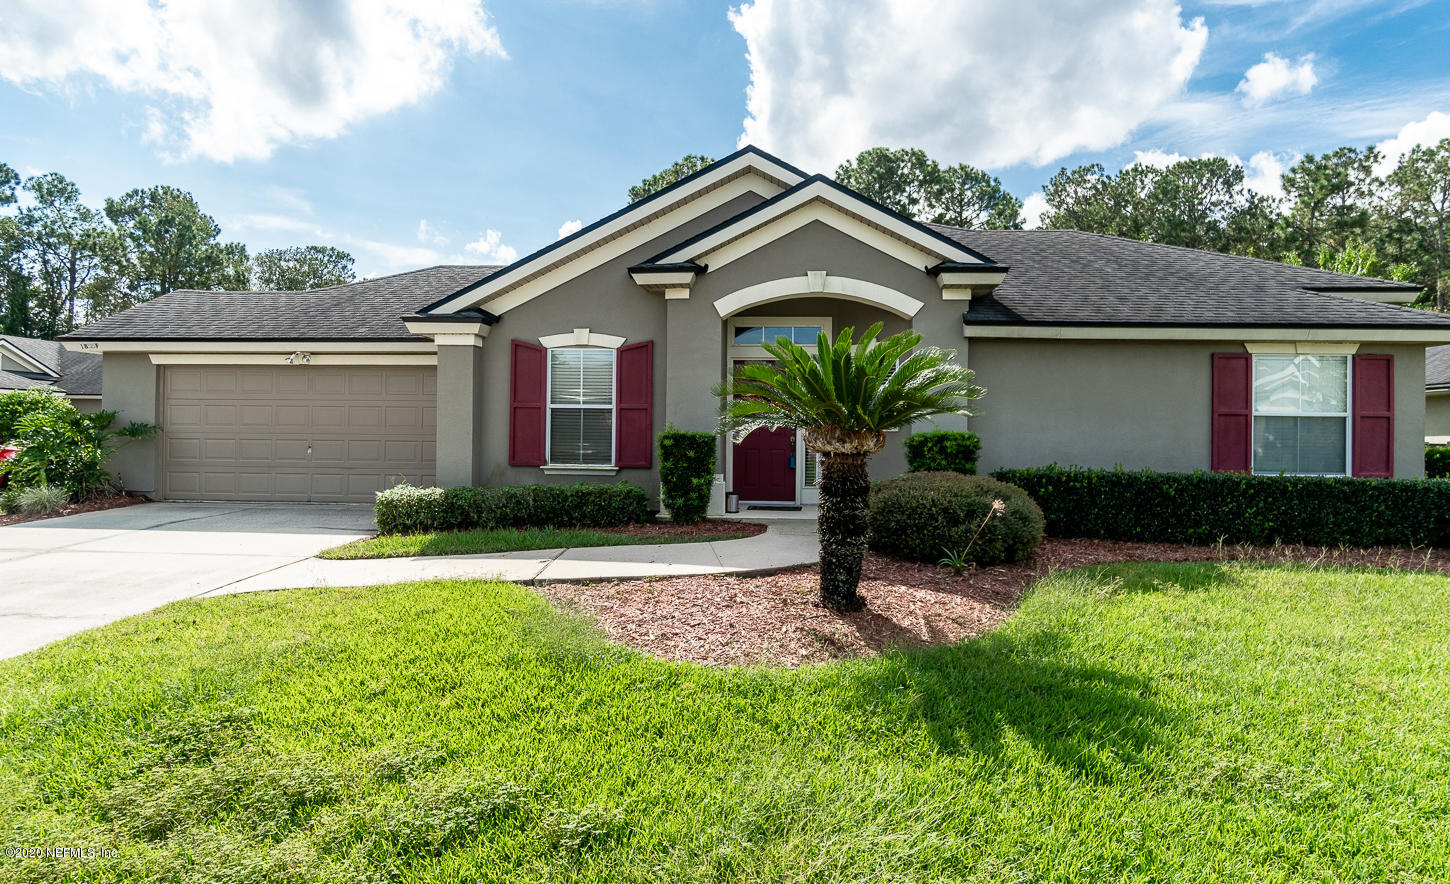 1855 COPPER STONE, FLEMING ISLAND, FLORIDA 32003, 2 Bedrooms Bedrooms, ,2 BathroomsBathrooms,Residential,For sale,COPPER STONE,1077410